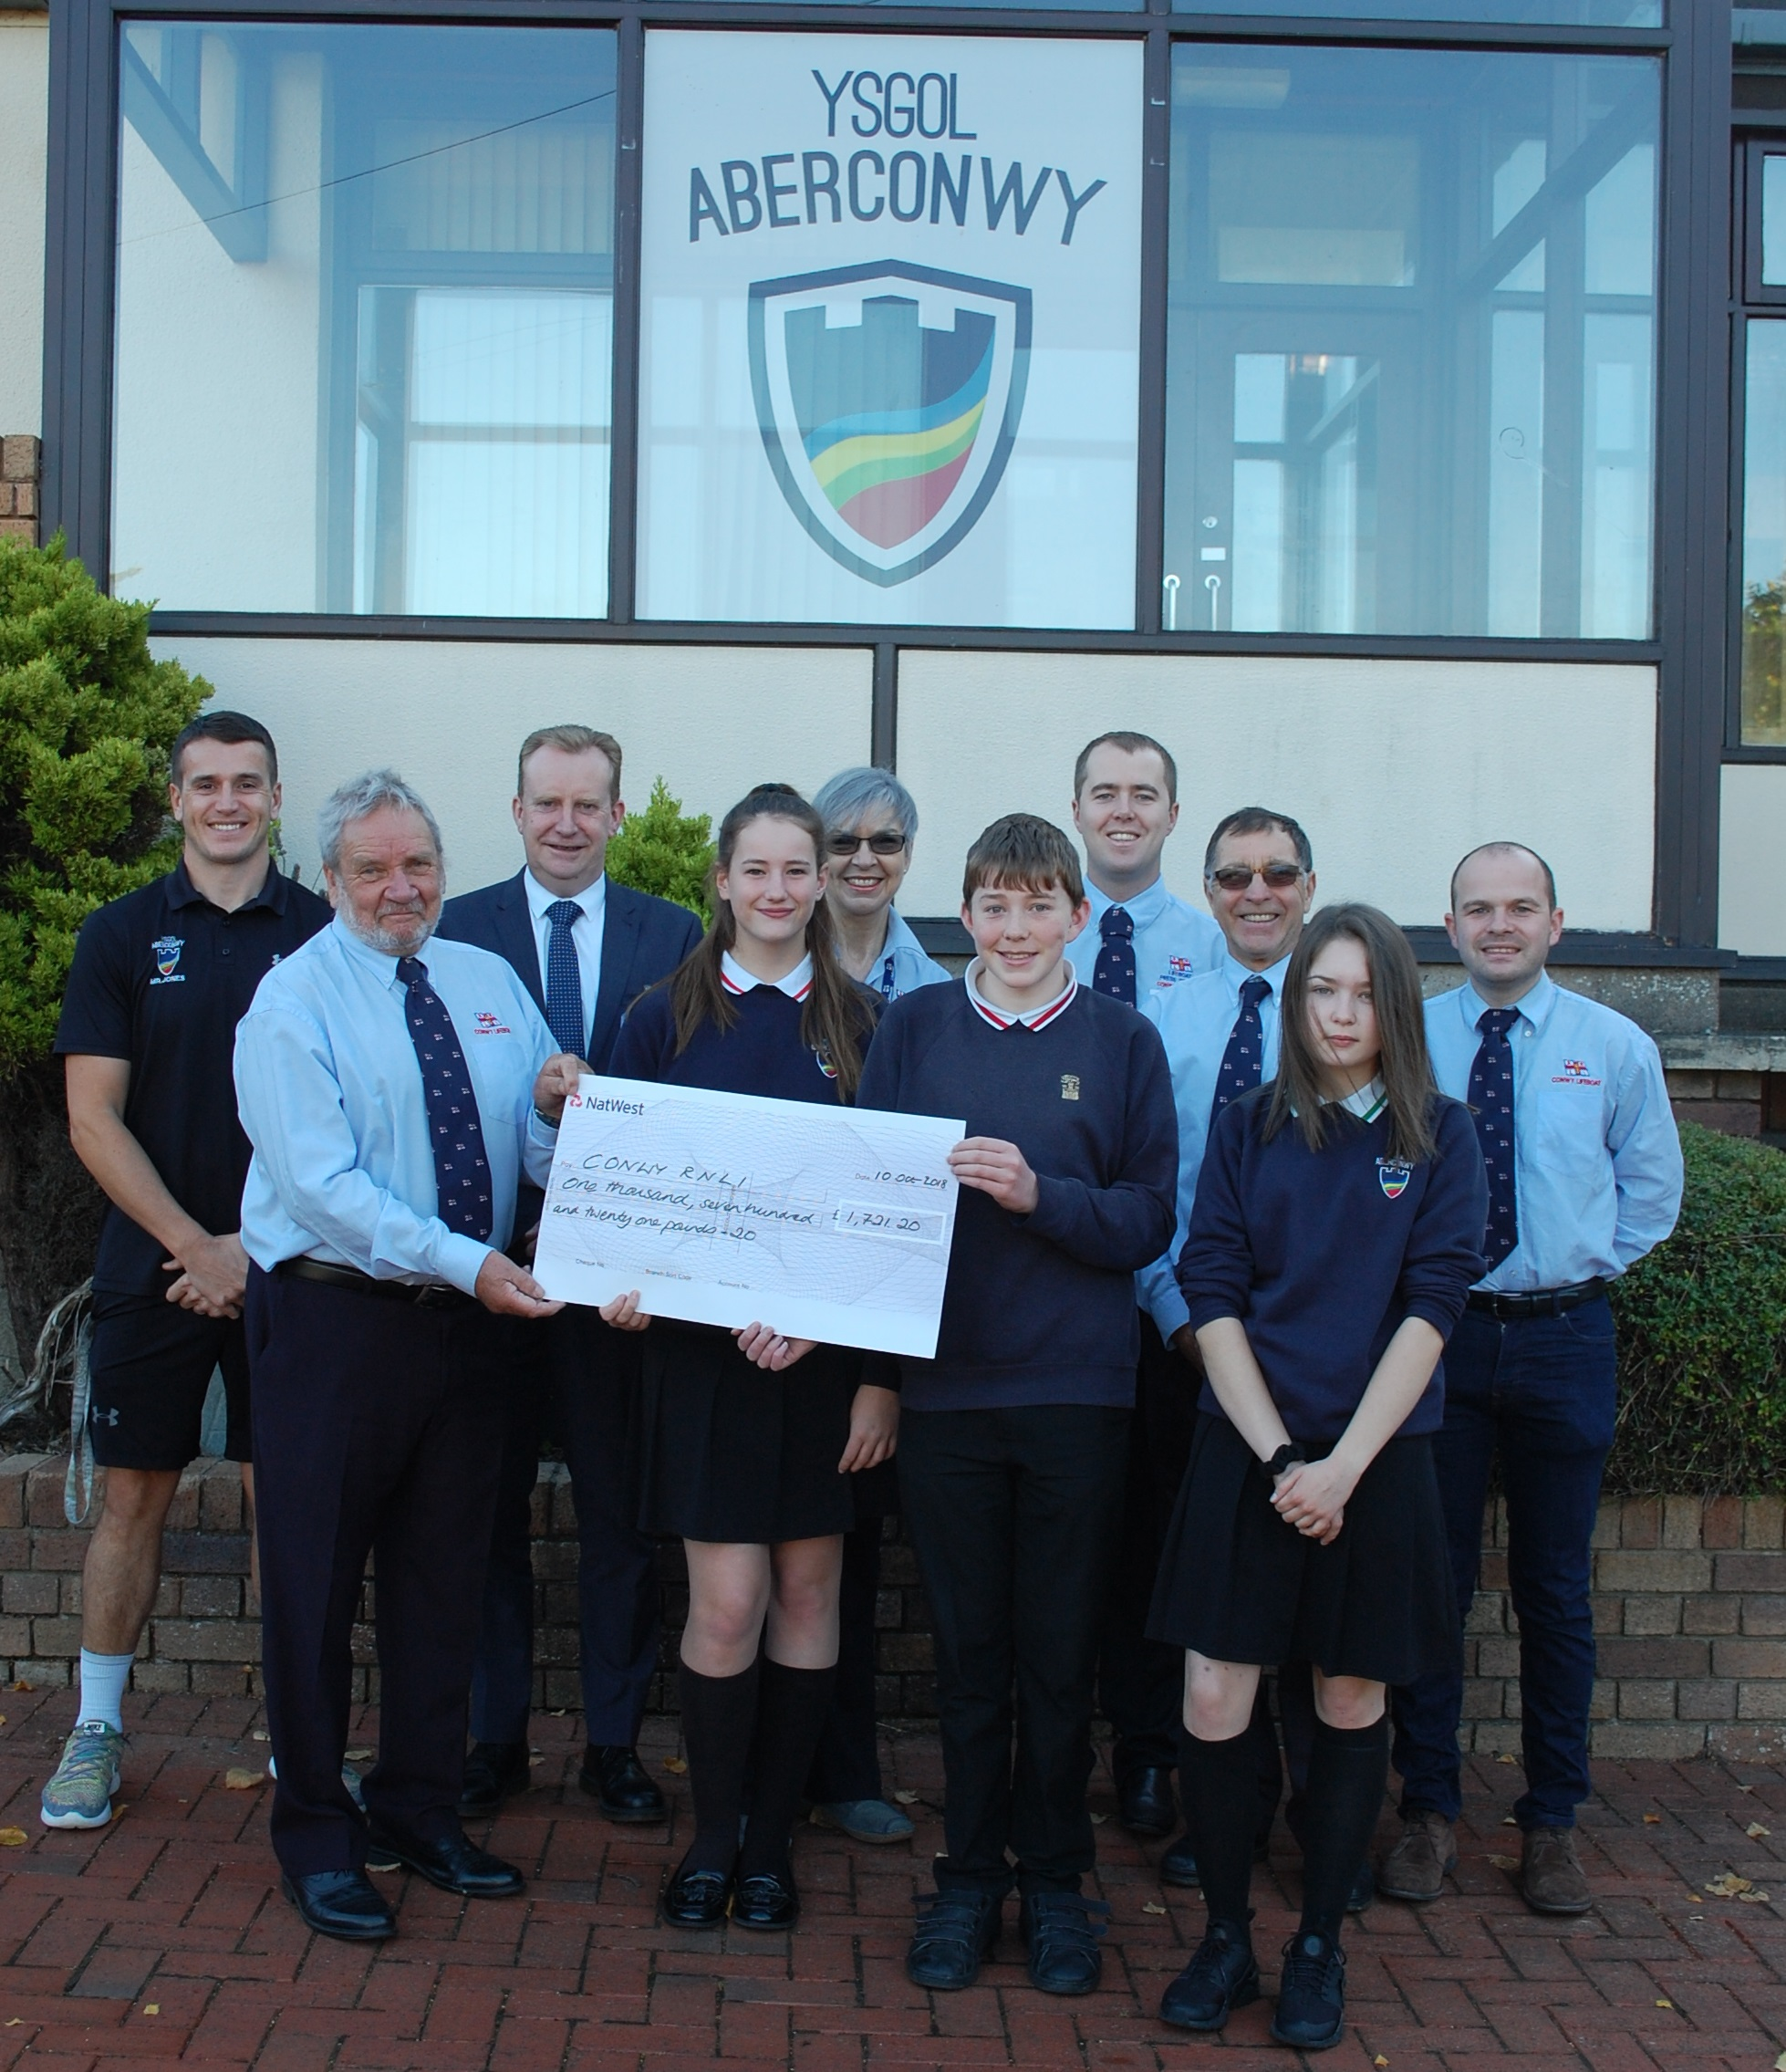 Staff and pupils pictured outside school handing over cheque to Conwy RNLI volunteers.